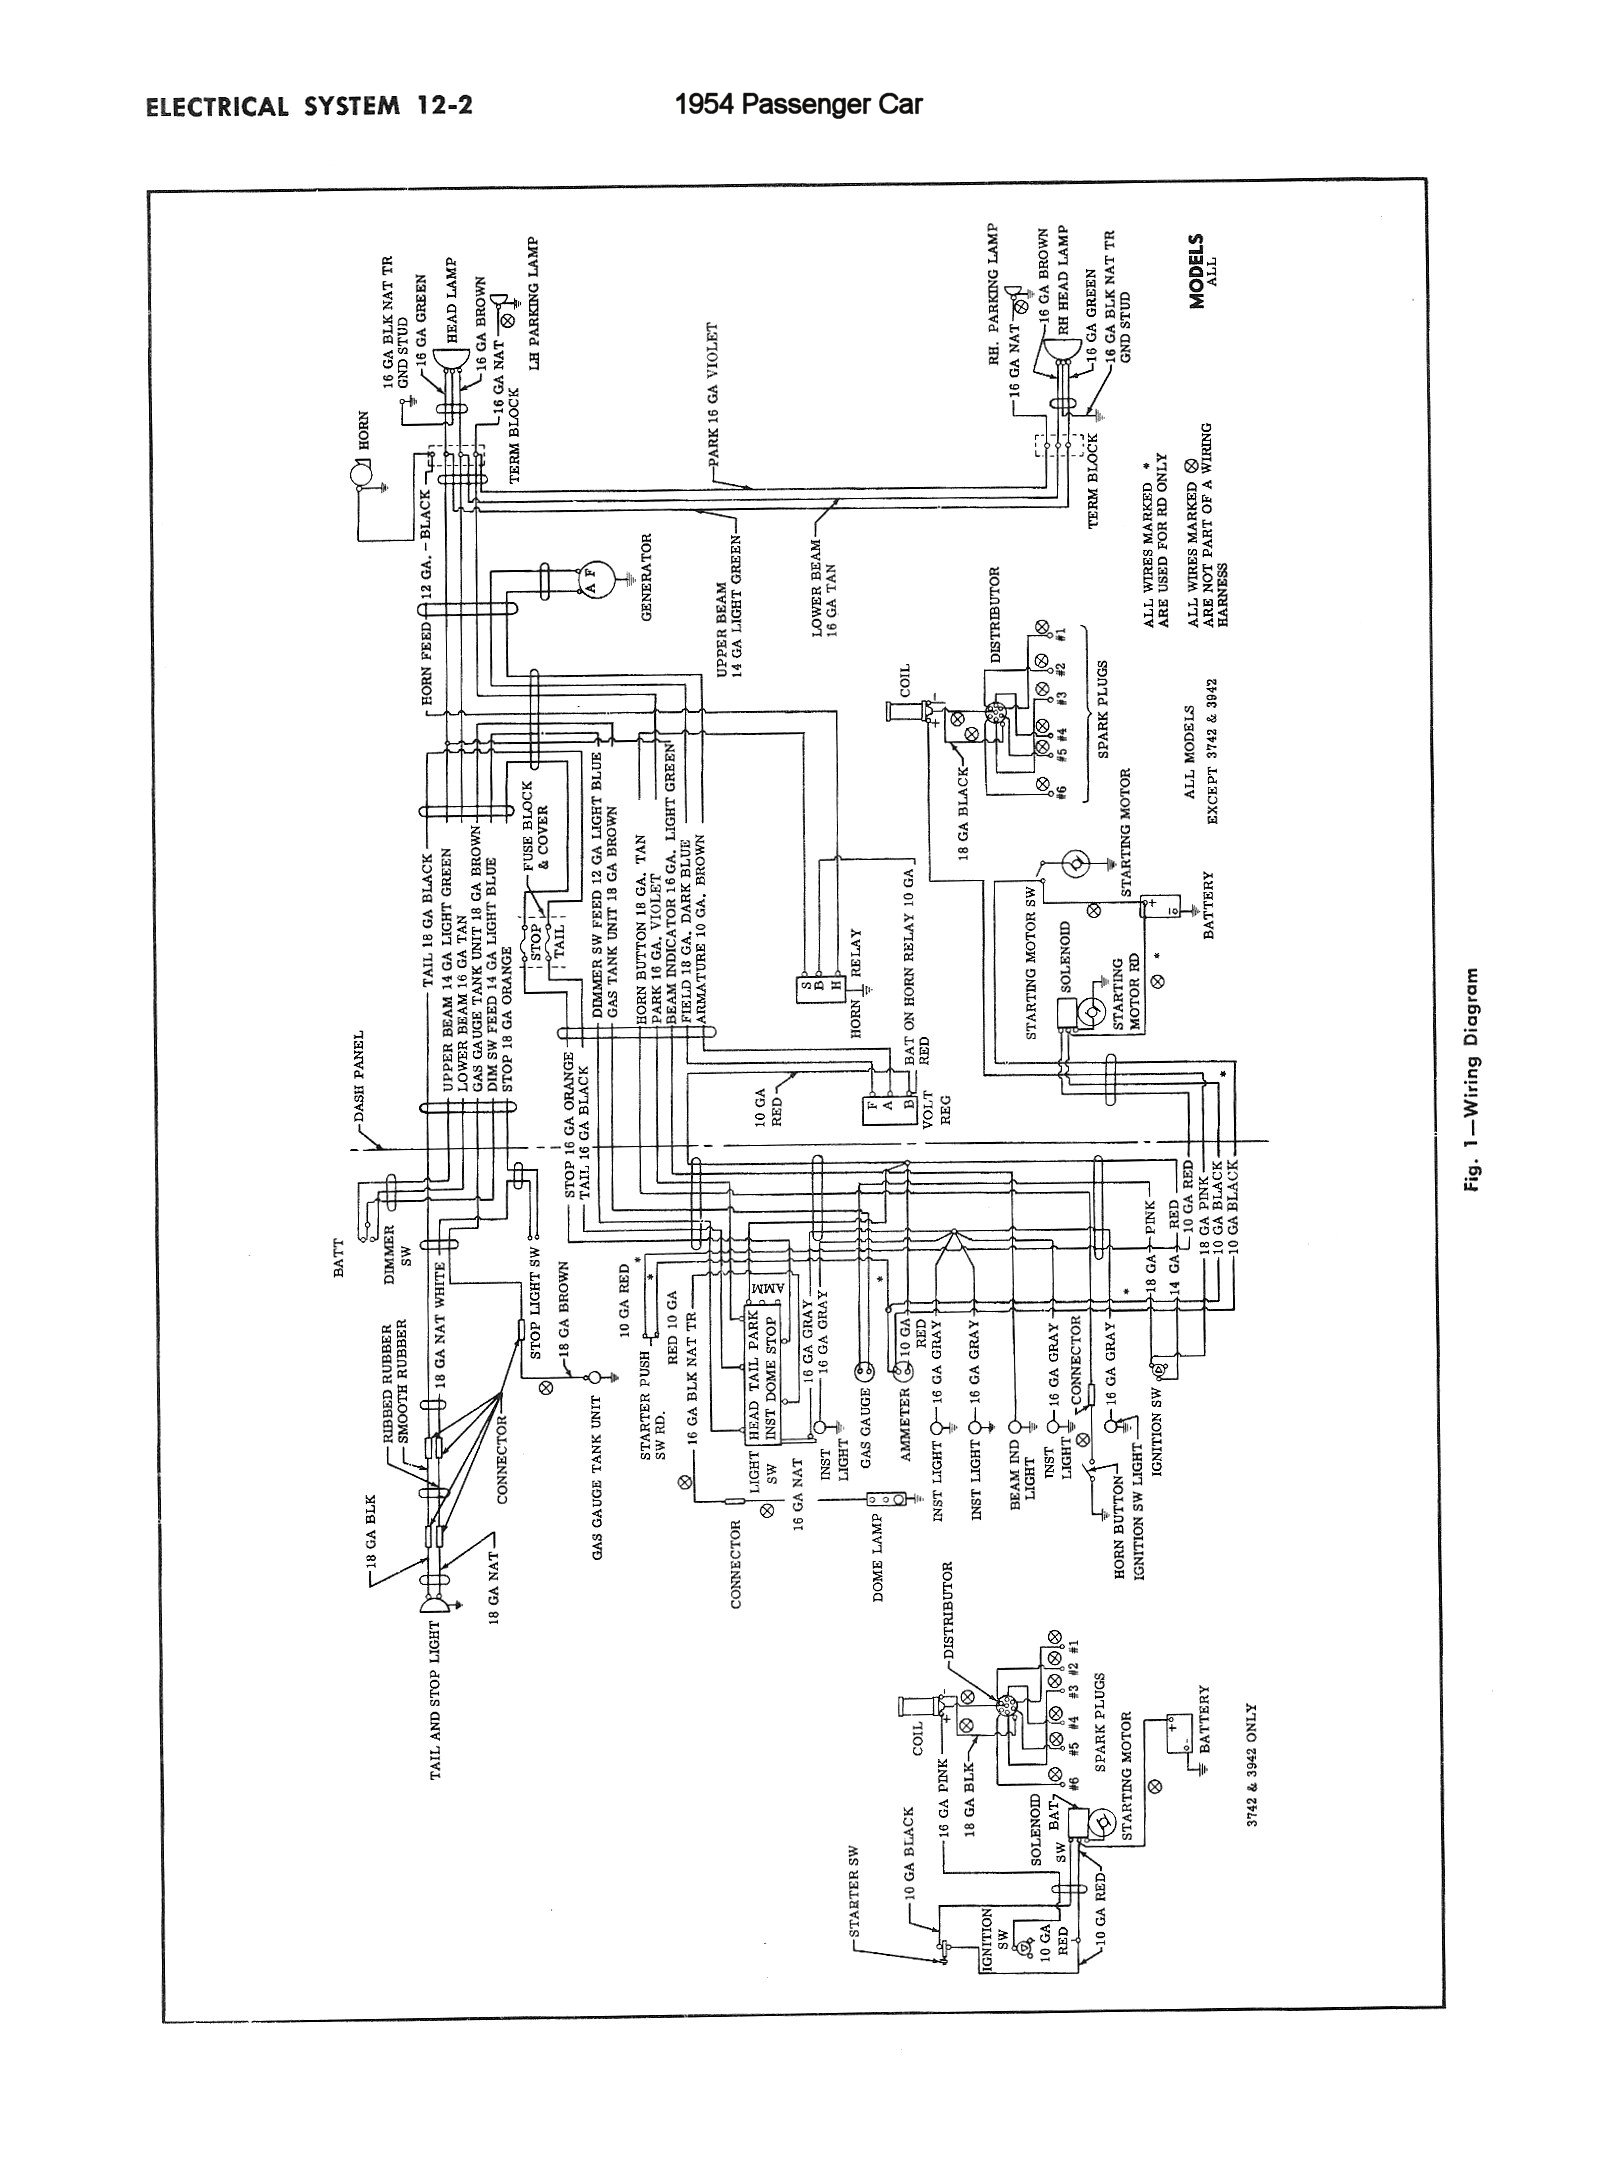 1955 chevy wiring diagram acoustic guitar 1954 blinker all data best library 1944